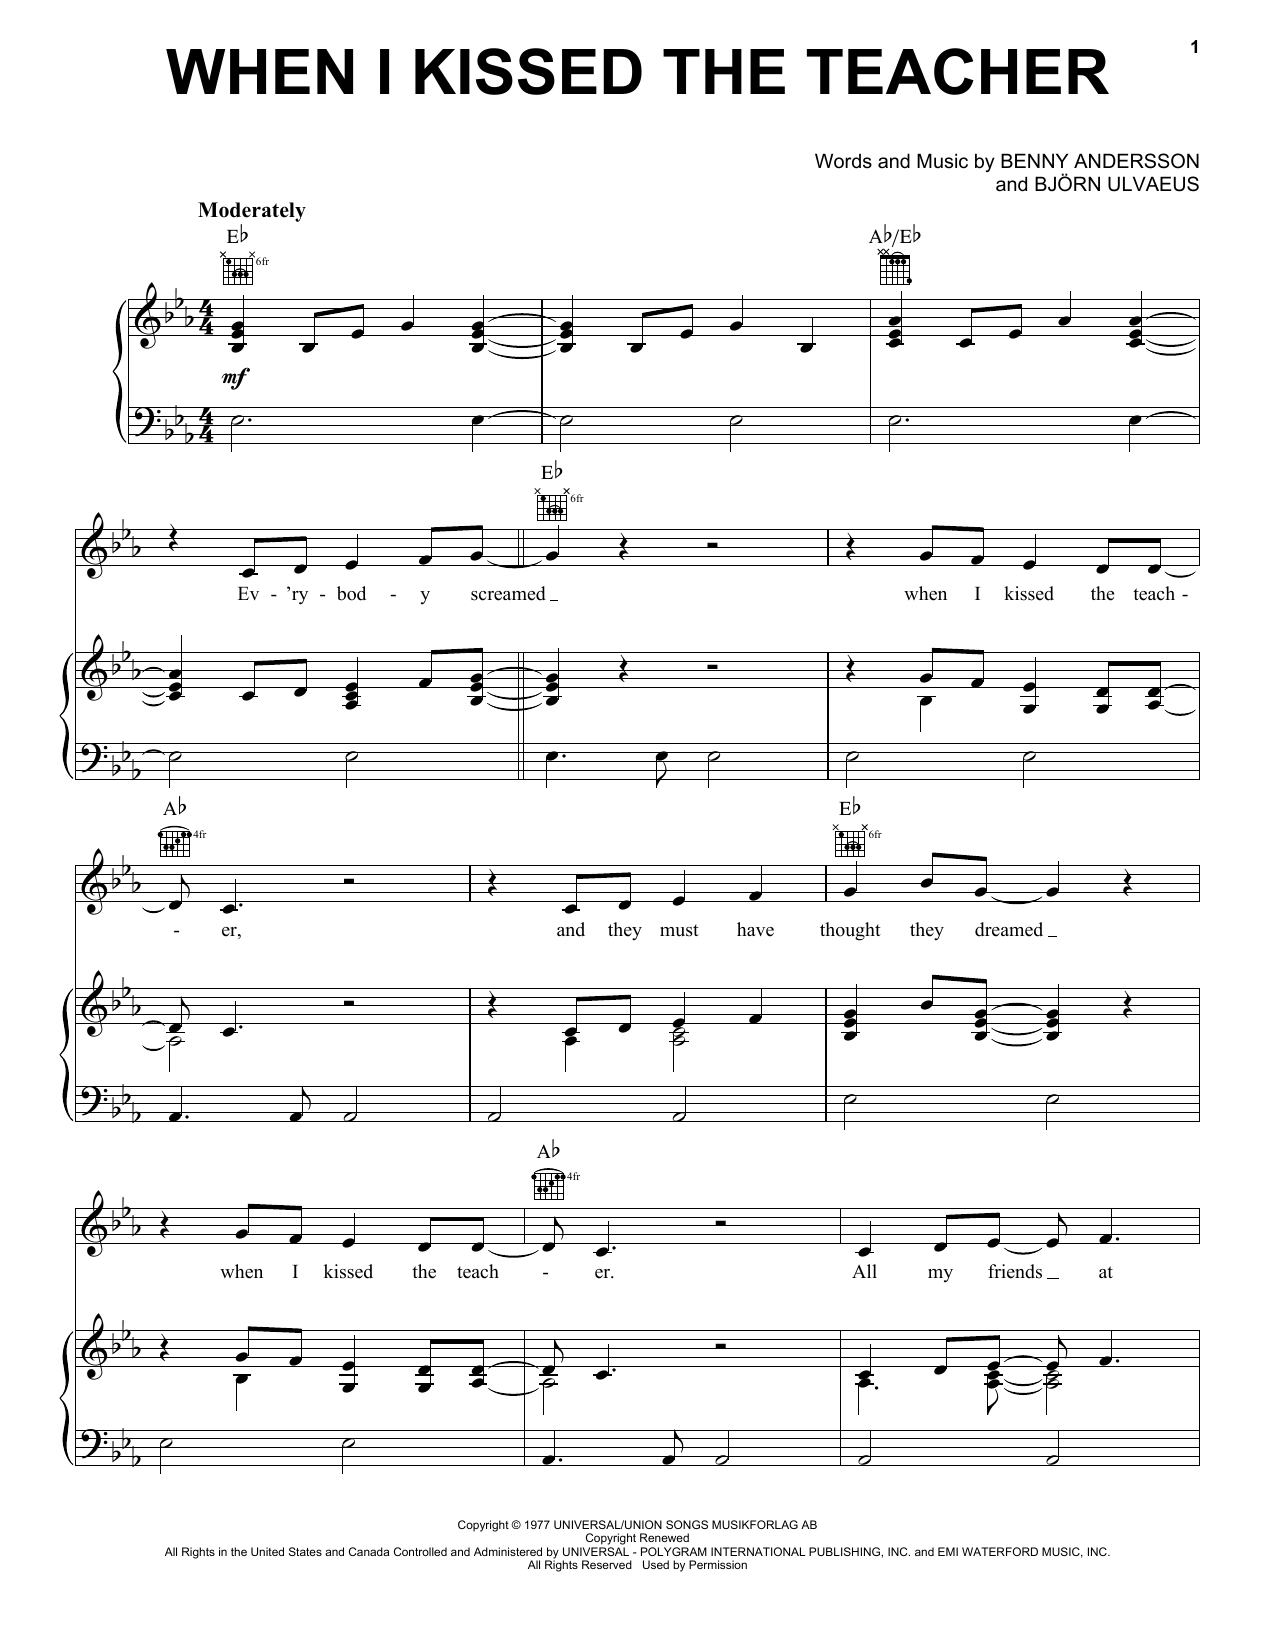 Abba When I Kissed The Teacher From Mamma Mia Here We Go Again Sheet Music Notes Chords Download Printable Piano Vocal Guitar Right Hand